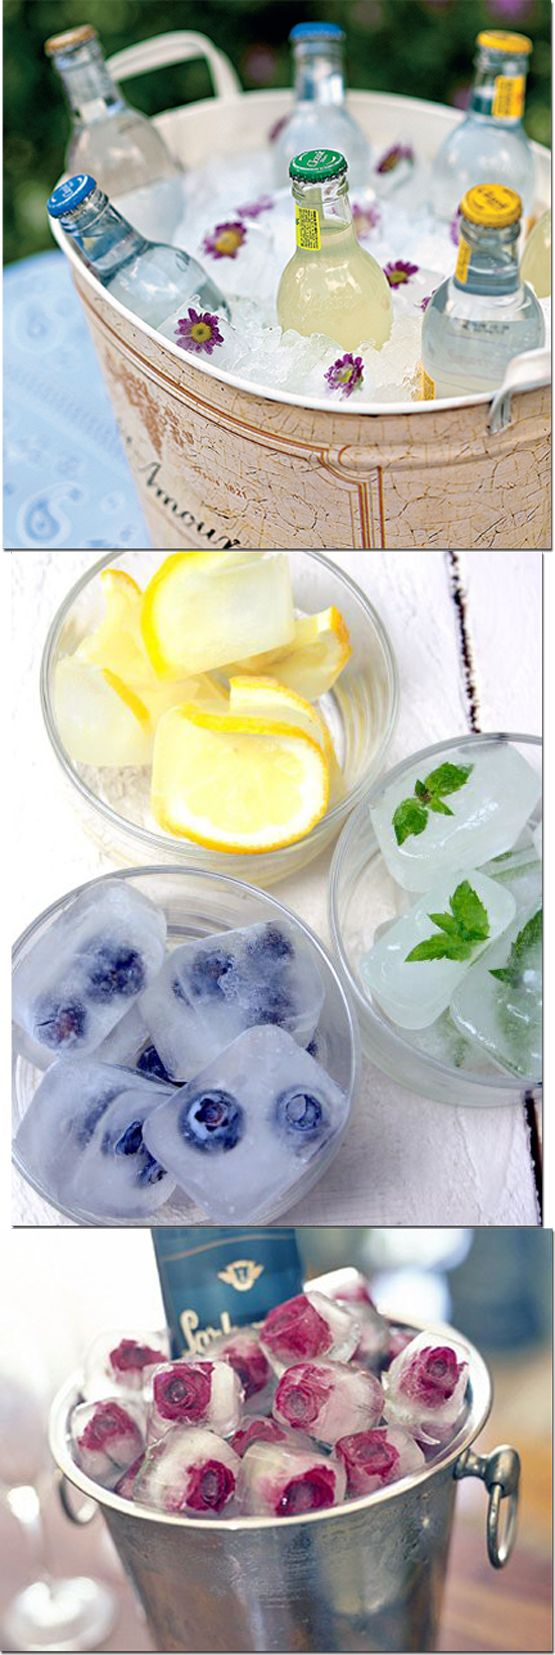 Flavoured ice cubes to add a tinge of fruity taste to one's water or beverages                                                                                                                                                      More